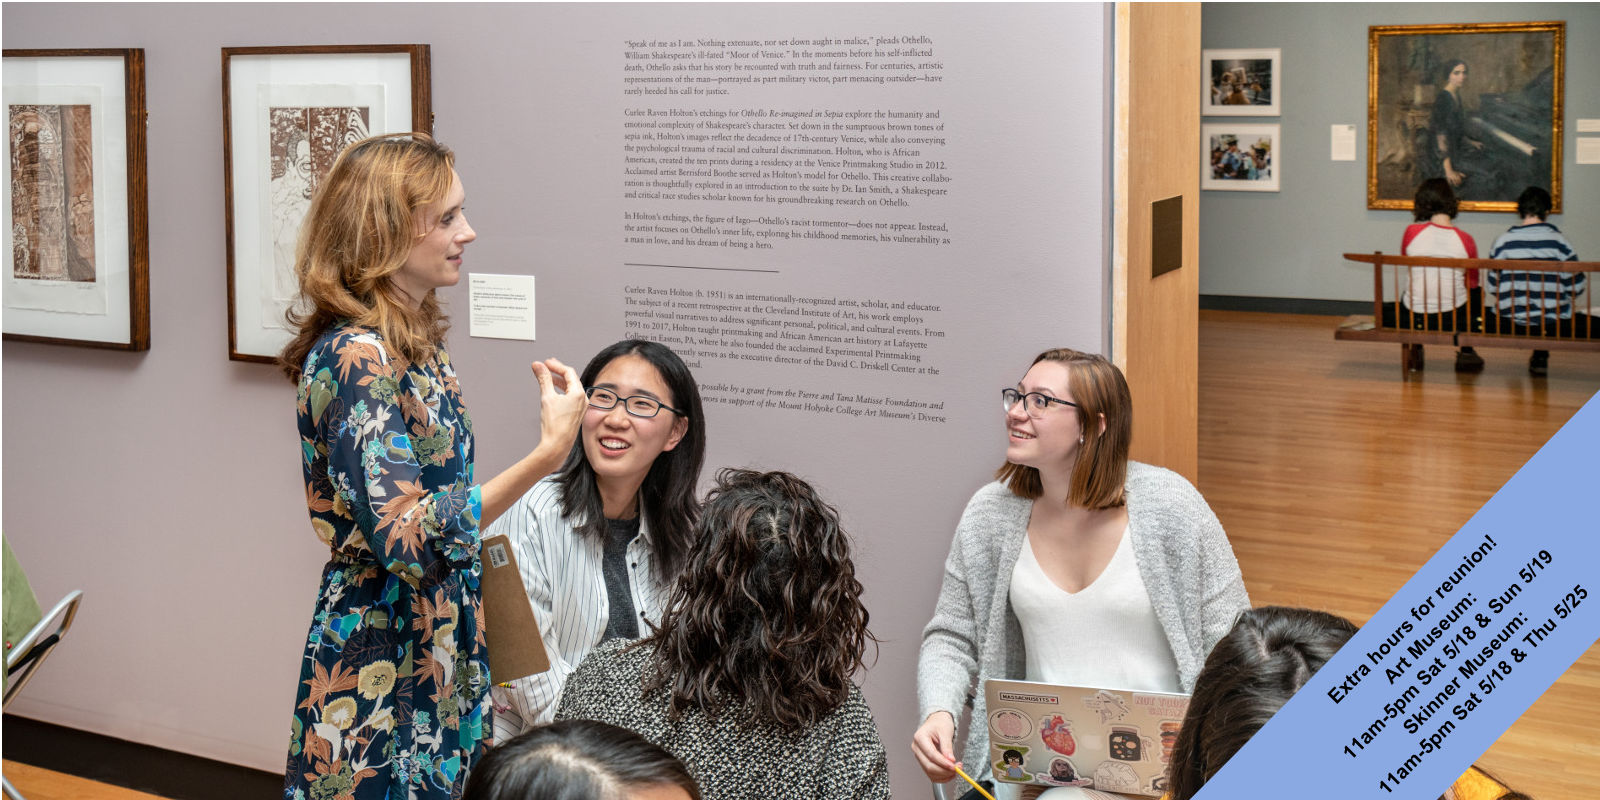 Professor Amy Rogers with Shakespeare students in the MHCAM galleries, October 2018